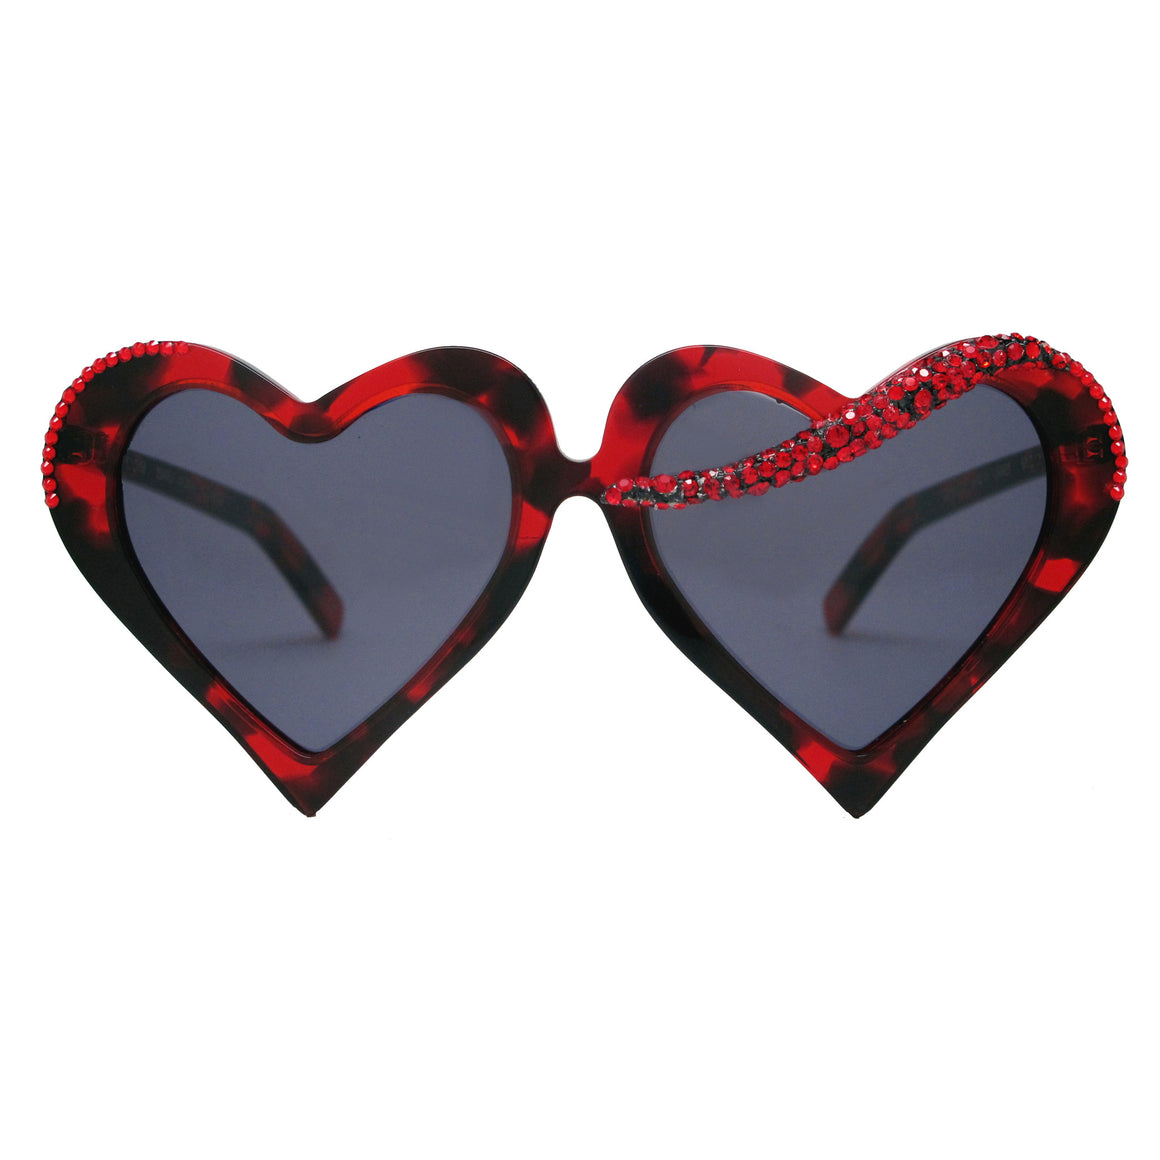 Jorgensen Red Tortoise heart shaped sunnies